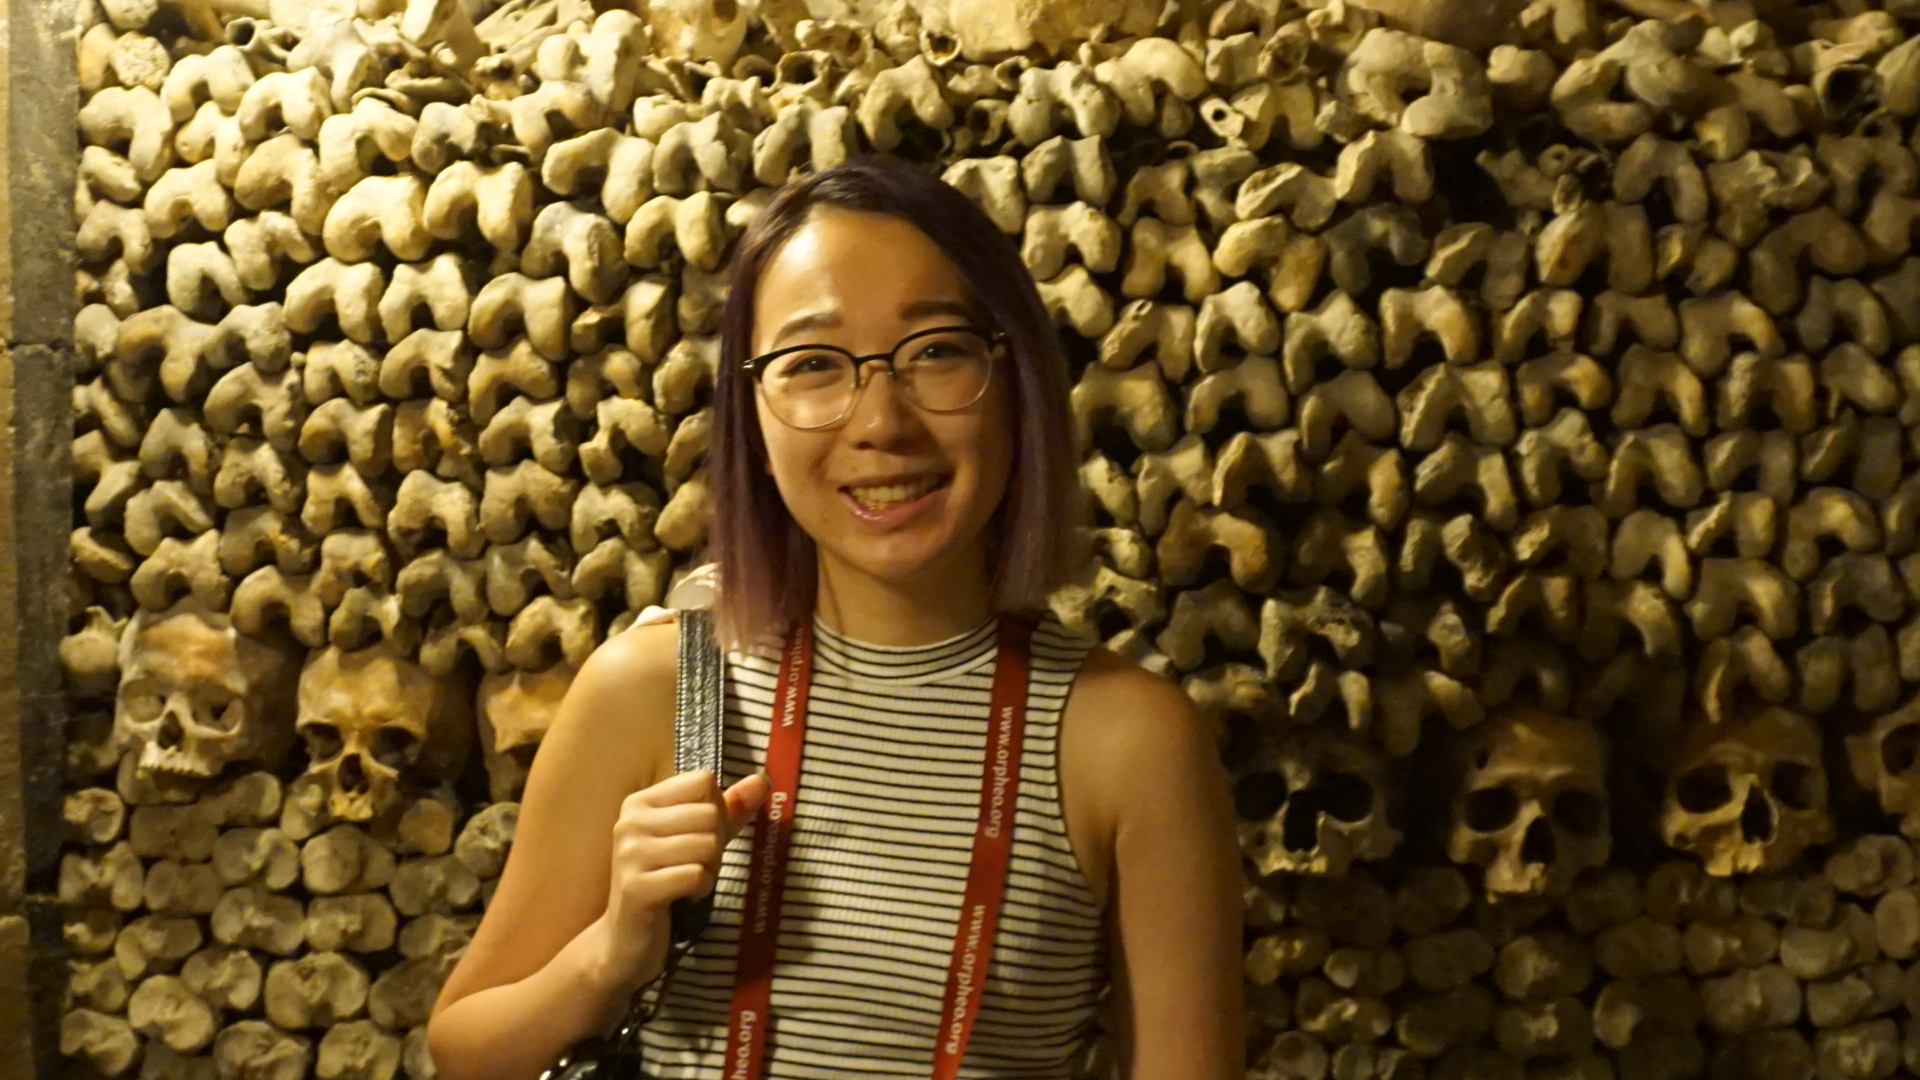 Jenny standing in front of human skulls and bones found in the Paris catacombs.